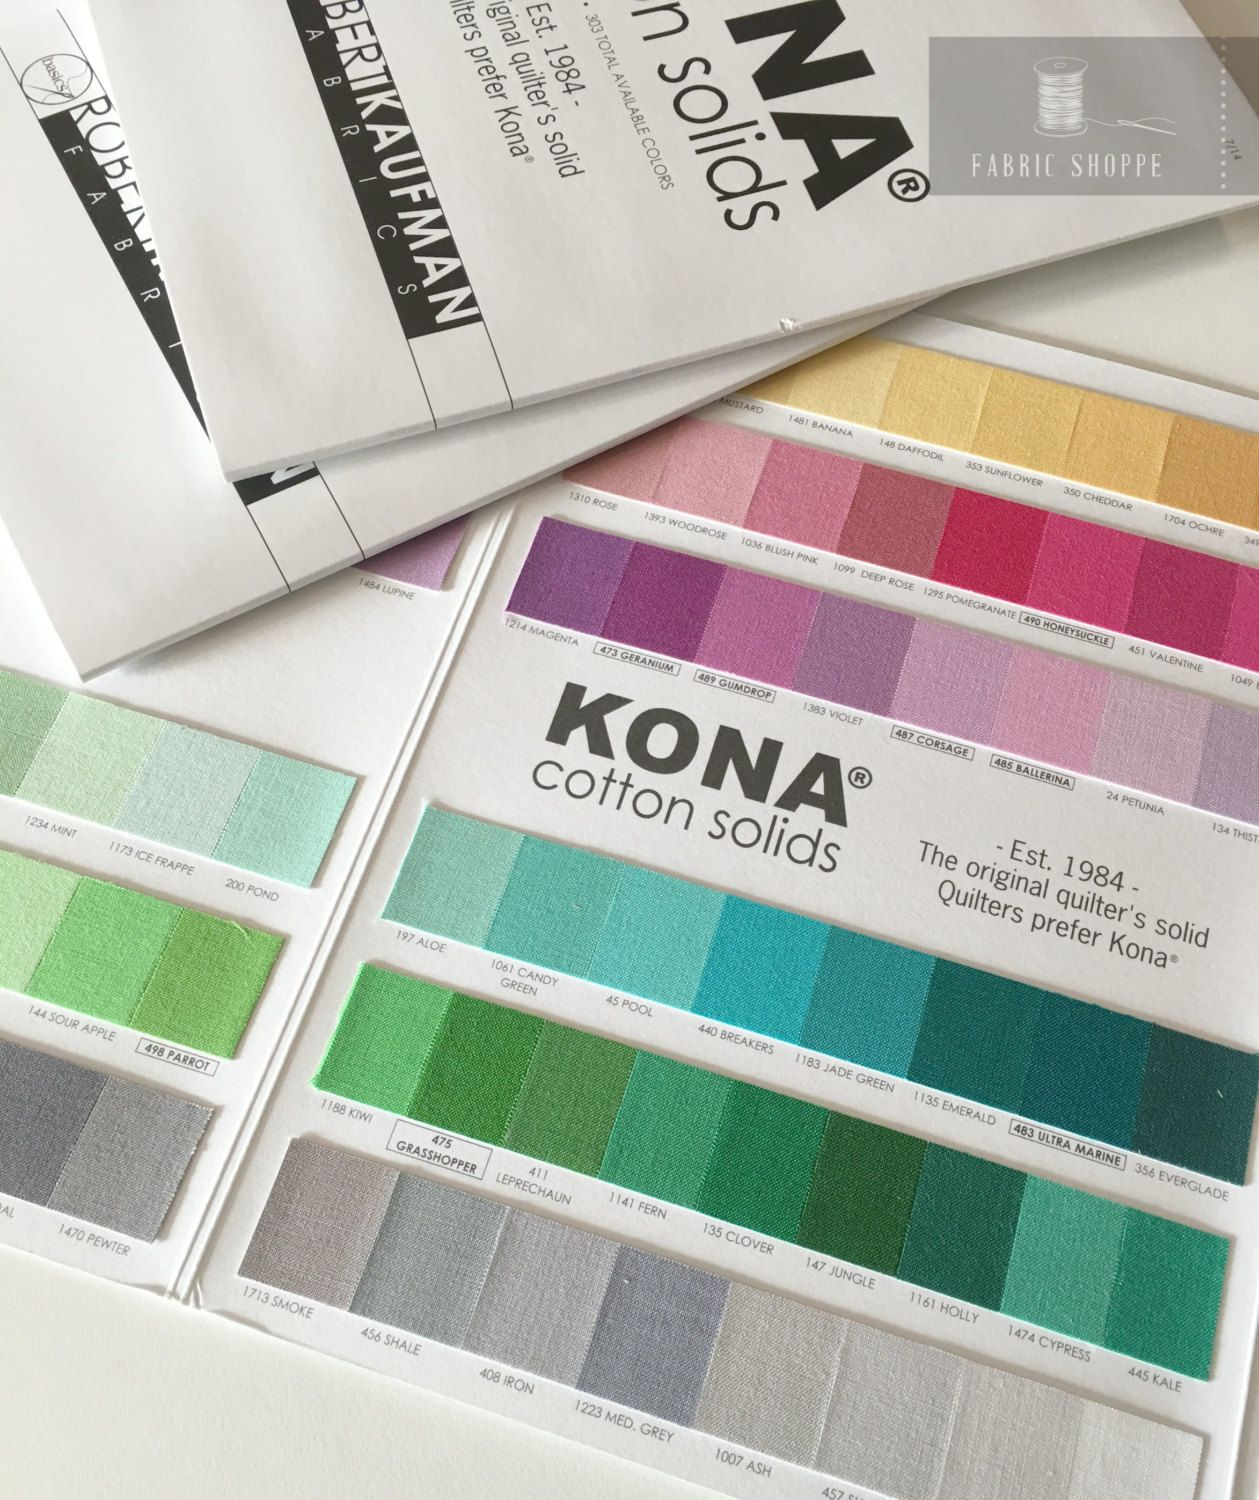 Kona color card kona swatches all 303 colors included quilting kona color card kona swatches all 303 colors included quilting cottons cotton solid fabric chart robert kaufman quilting reference nvjuhfo Images